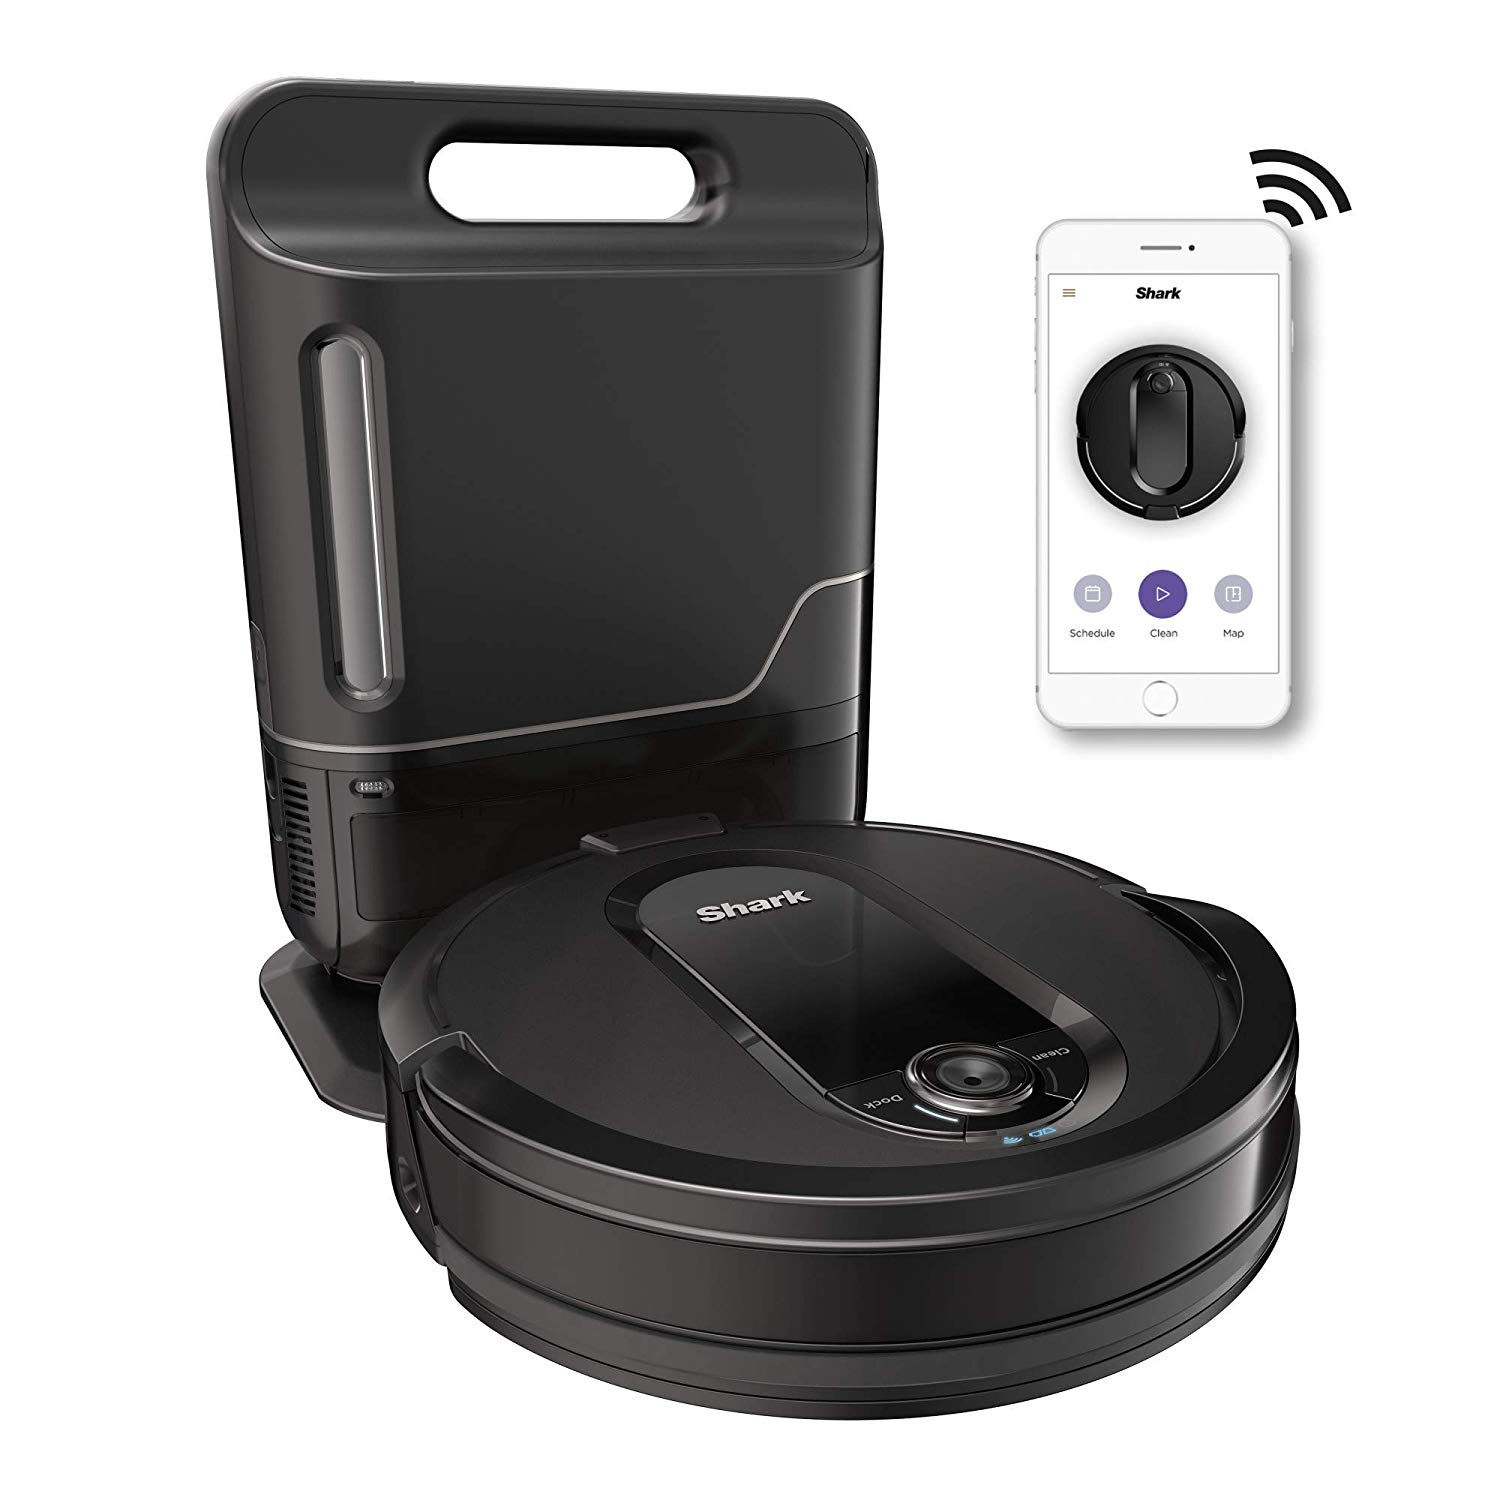 Shark-IQ-R101AE-with-Self-Empty-Base-Wi-Fi-Connected-Home-Mapping-Works-with-Alexa-Ideal-for-Pet-Hair-Carpets-Hard-Floors-Robot-Vacuum-RV1001AE--30-Session-Capacity-Black